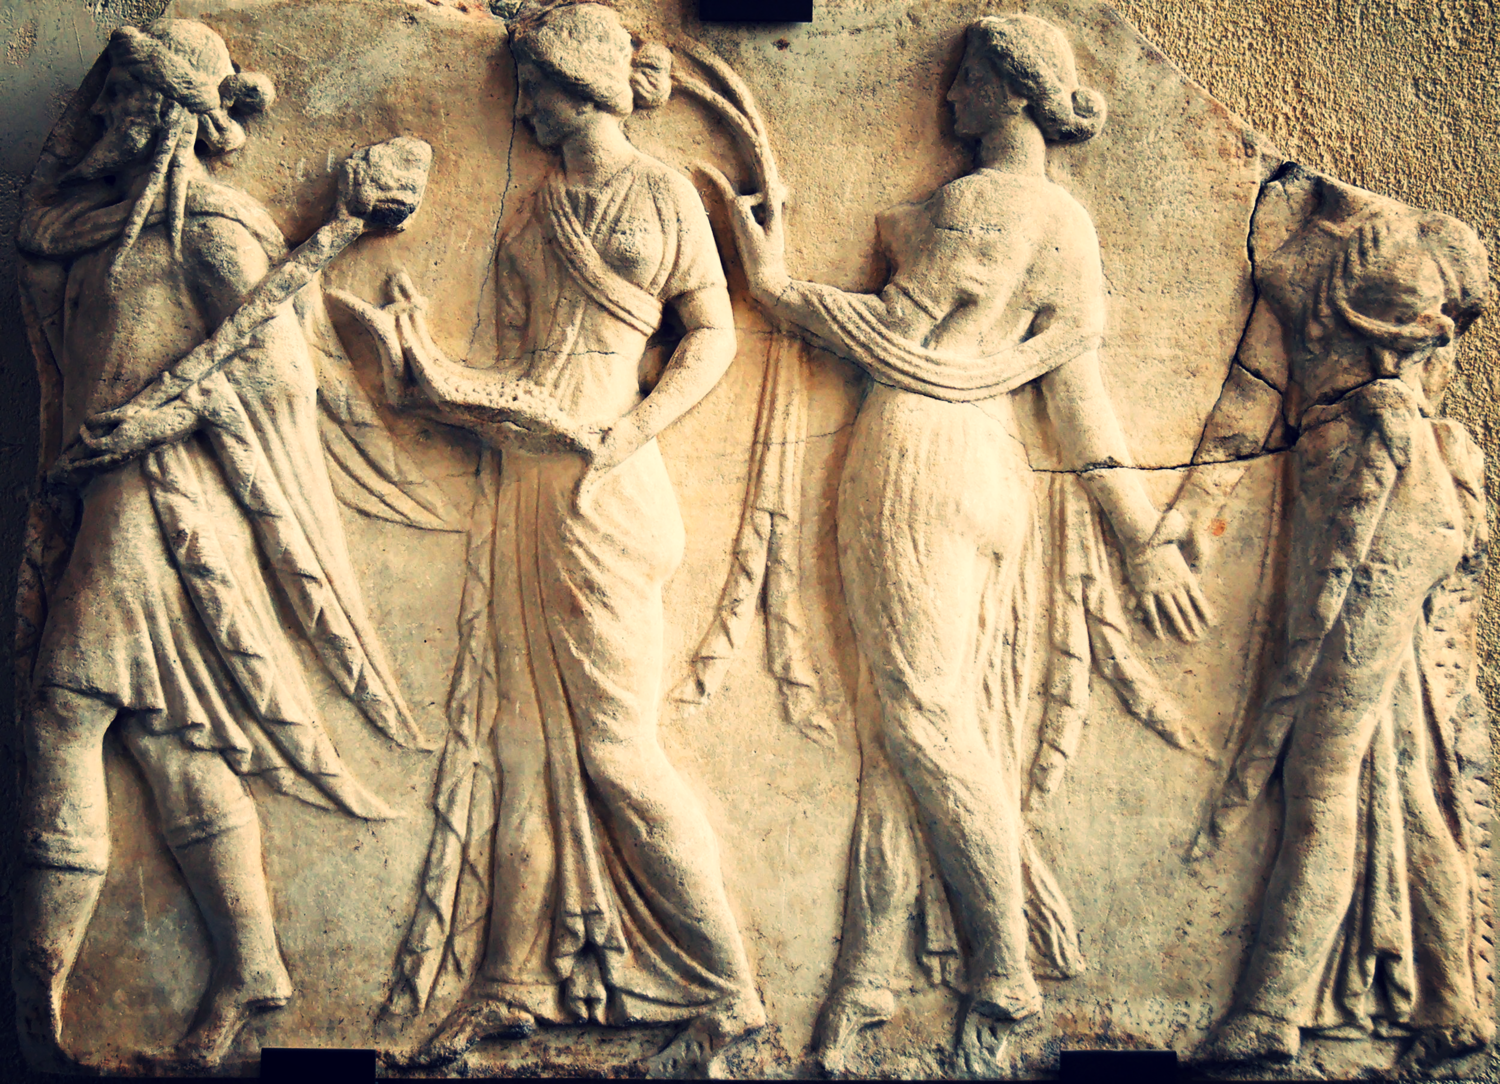 Libra, Aphrodite and the Horai — The Archetypal Eye